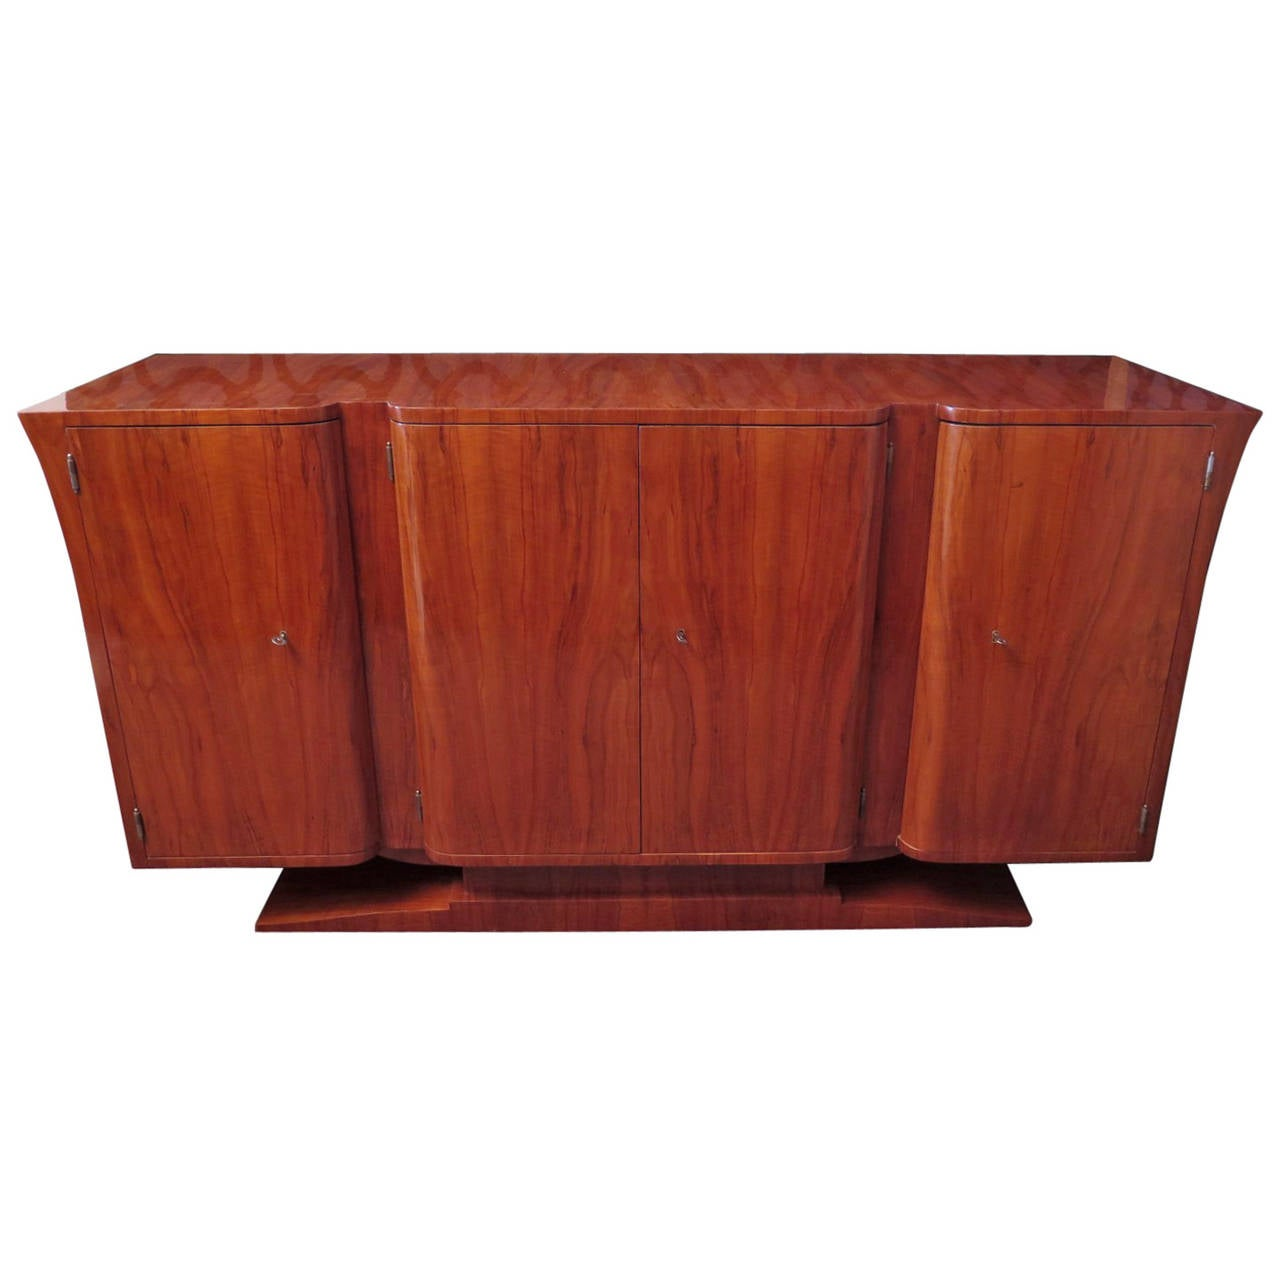 Italian art deco sideboard for sale at 1stdibs - Deko sideboard ...